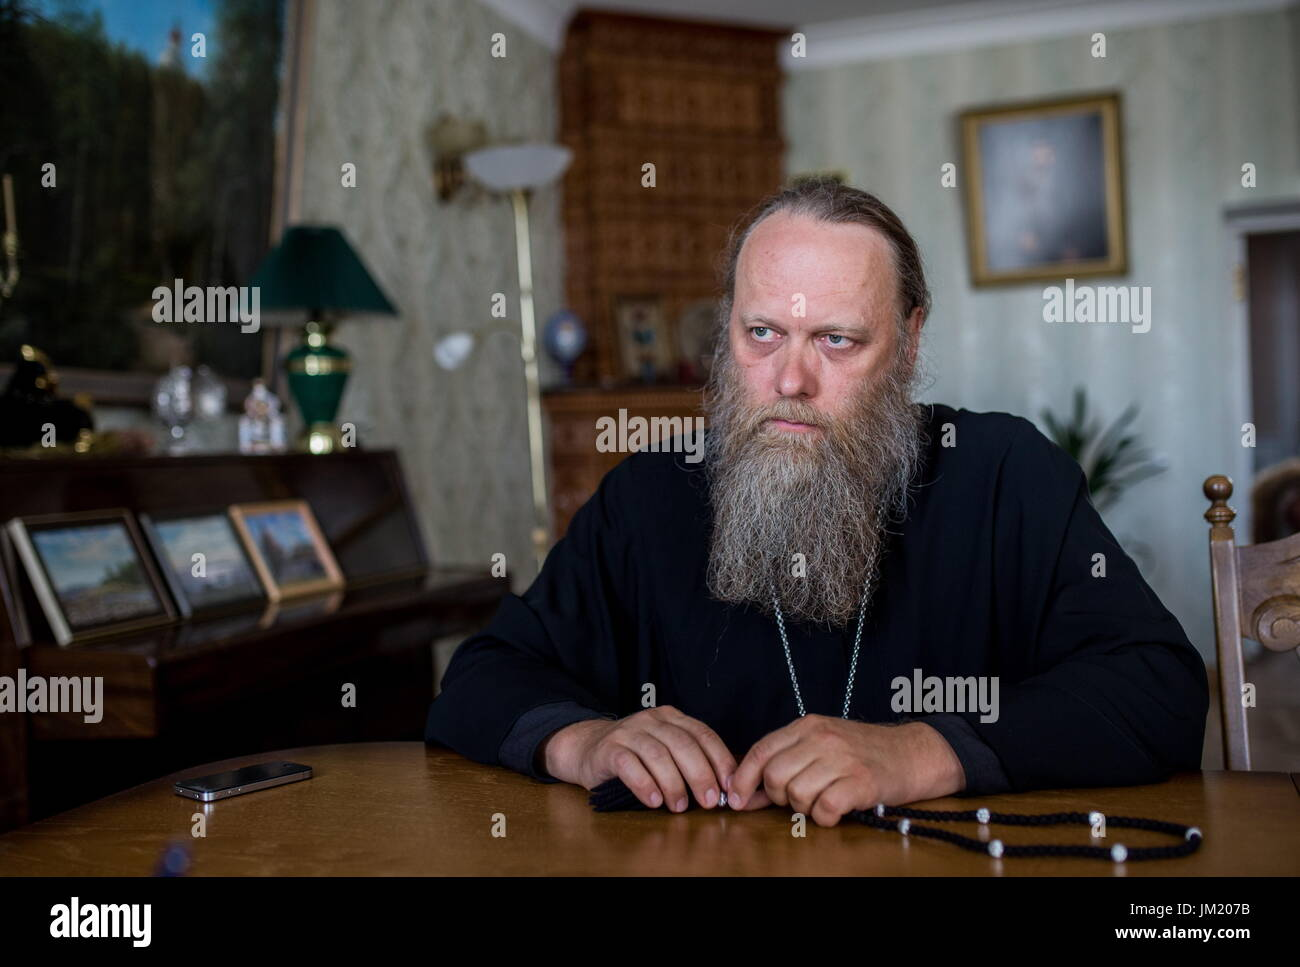 Arkhangelsk Region, Russia. 14th July, 2017. Archimandrite Porfiry (Shutov), the Father-Superior of the Solovetsky Stock Photo